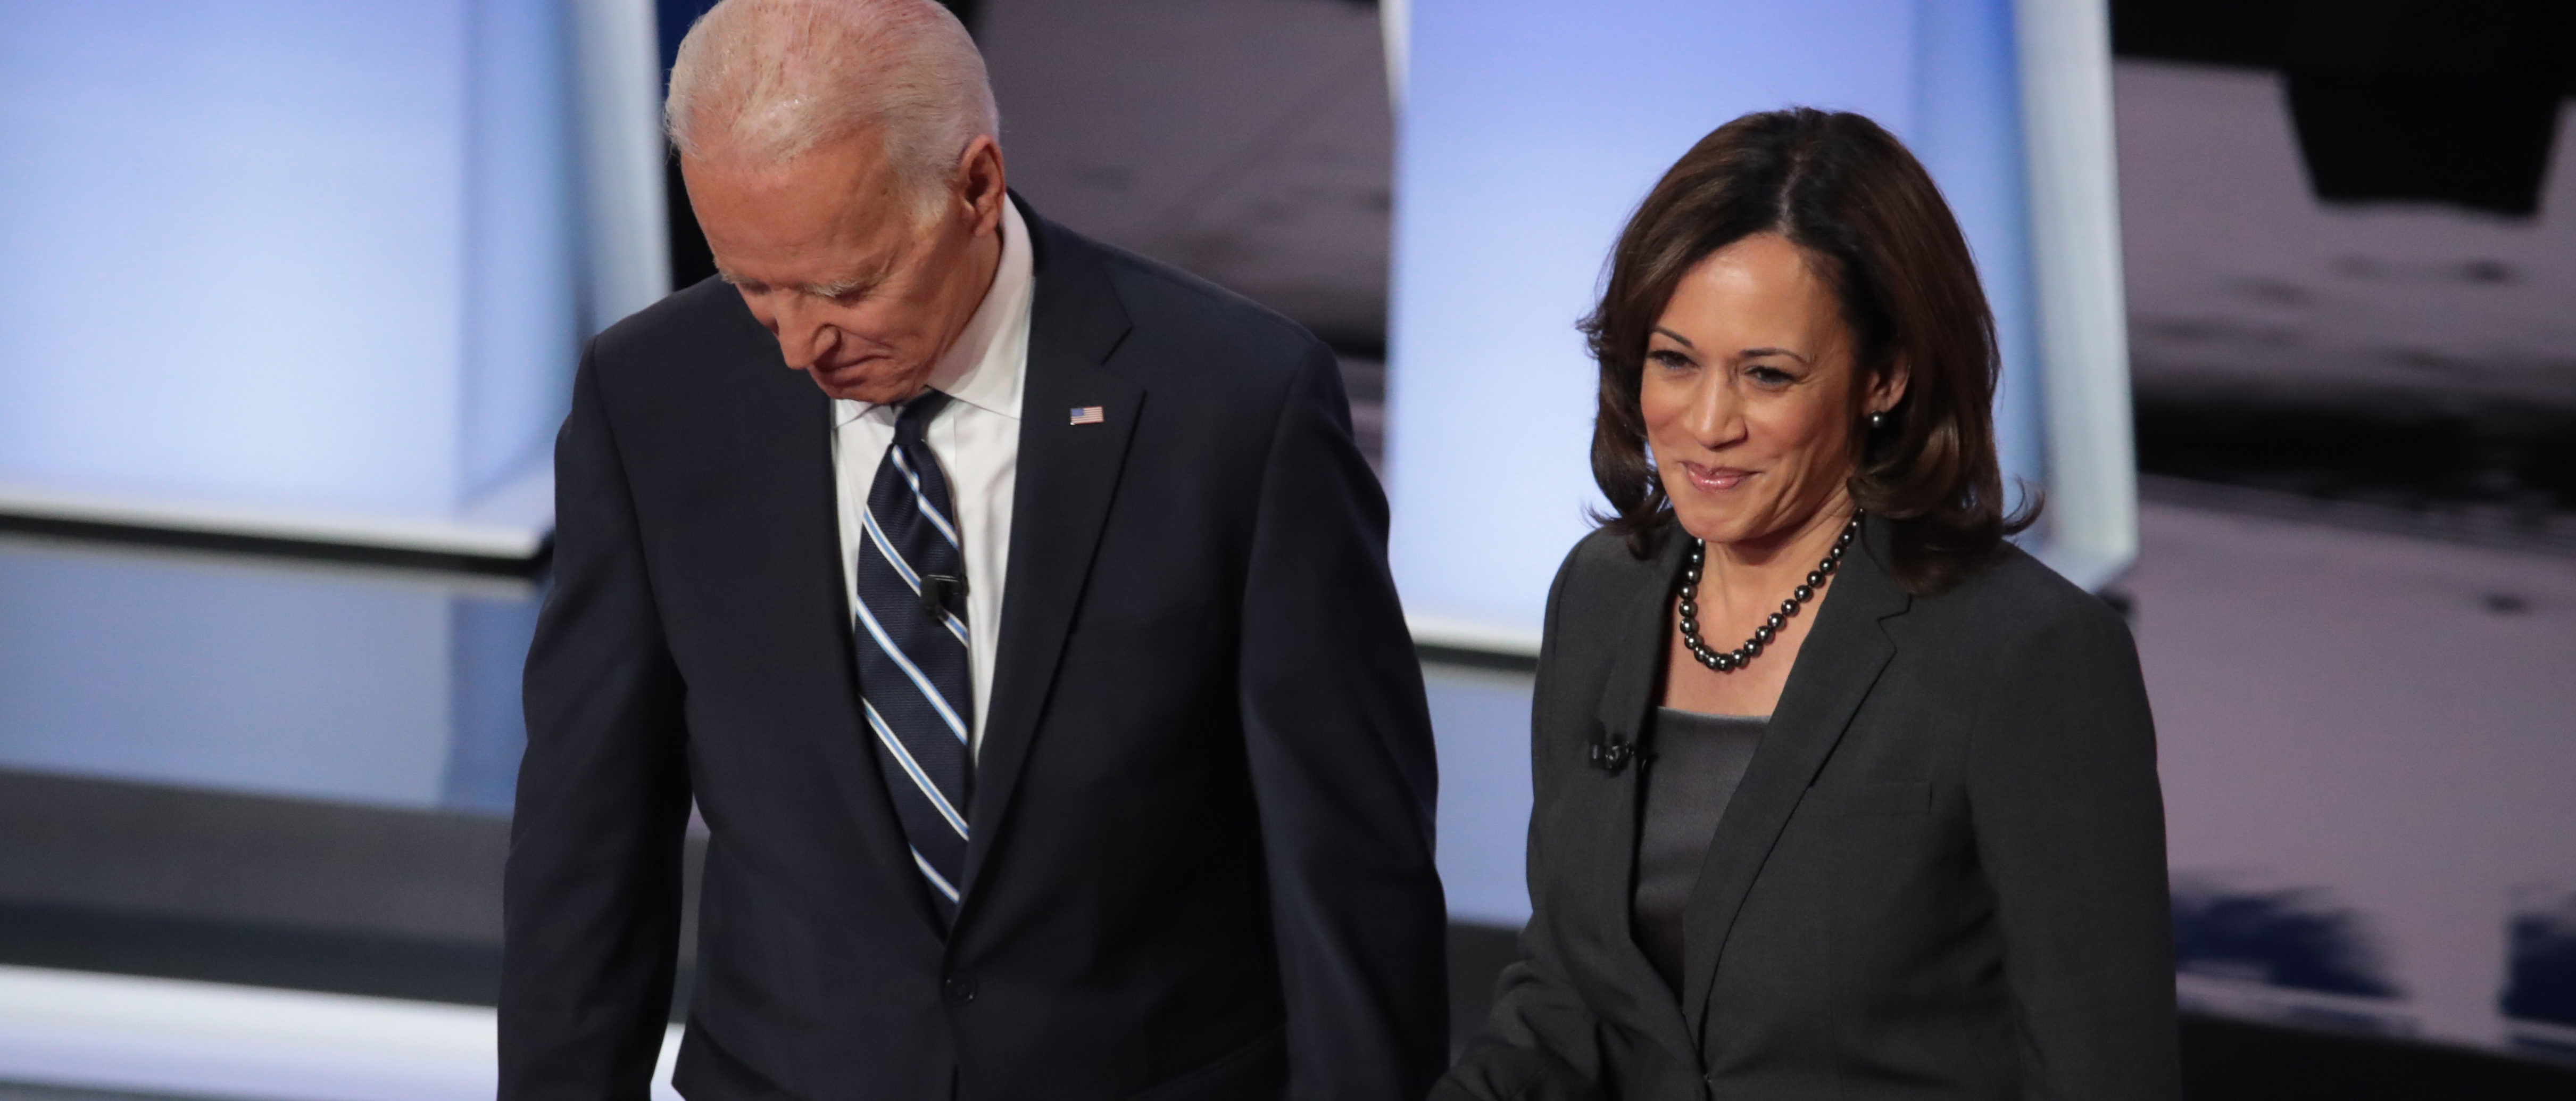 DETROIT, MICHIGAN - JULY 31: Democratic presidential candidates former Vice President Joe Biden and Sen. Kamala Harris (D-CA) greet each other at the Democratic Presidential Debate at the Fox Theatre July 31, 2019 in Detroit, Michigan. 20 Democratic presidential candidates were split into two groups of 10 to take part in the debate sponsored by CNN held over two nights at Detroit's Fox Theatre. (Photo by Scott Olson/Getty Images)